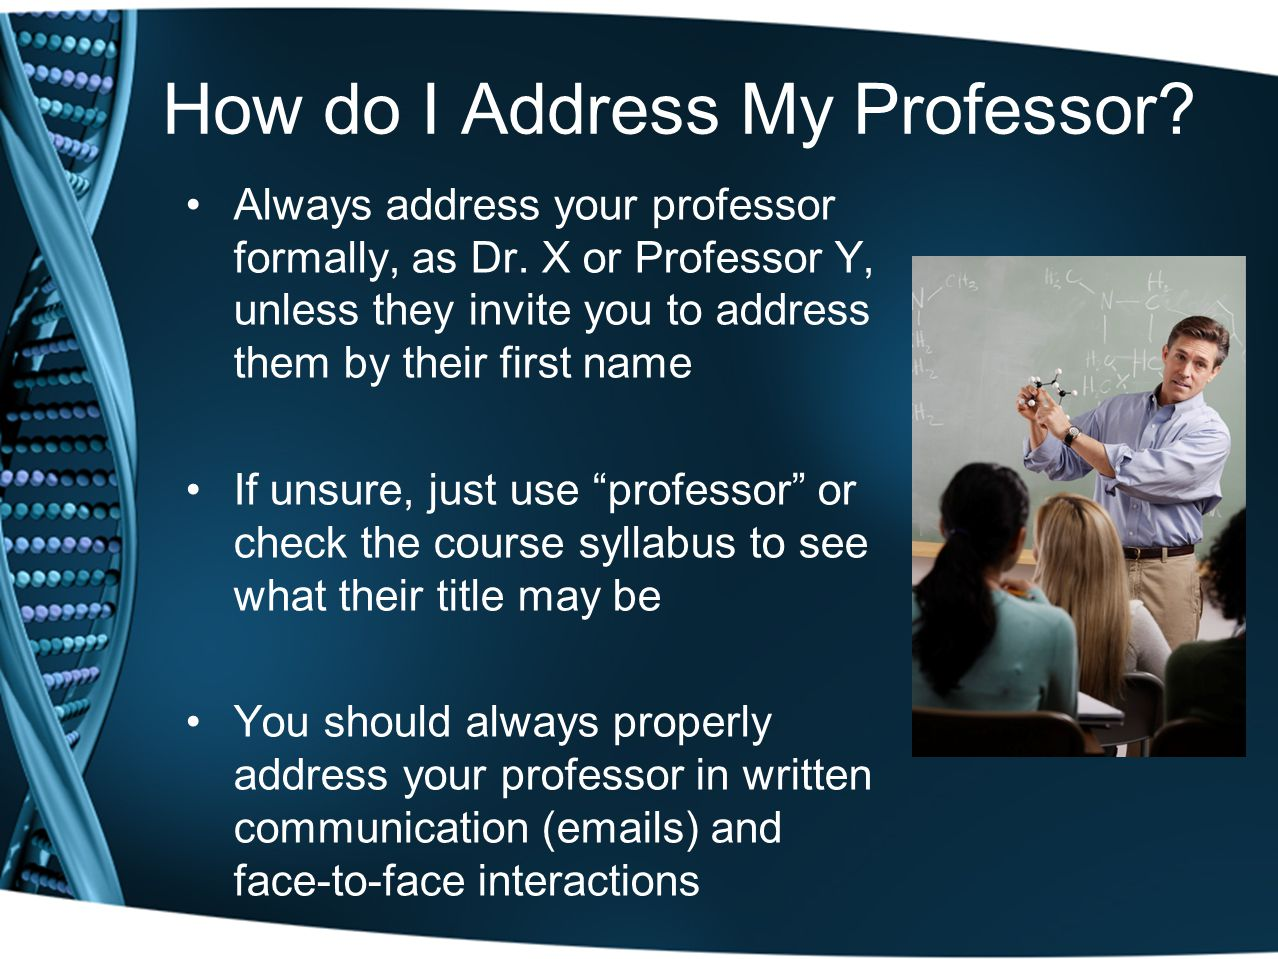 How do I Address My Professor? Always address your professor formally, as Dr. X or Professor Y, unless they invite you to address them by their first